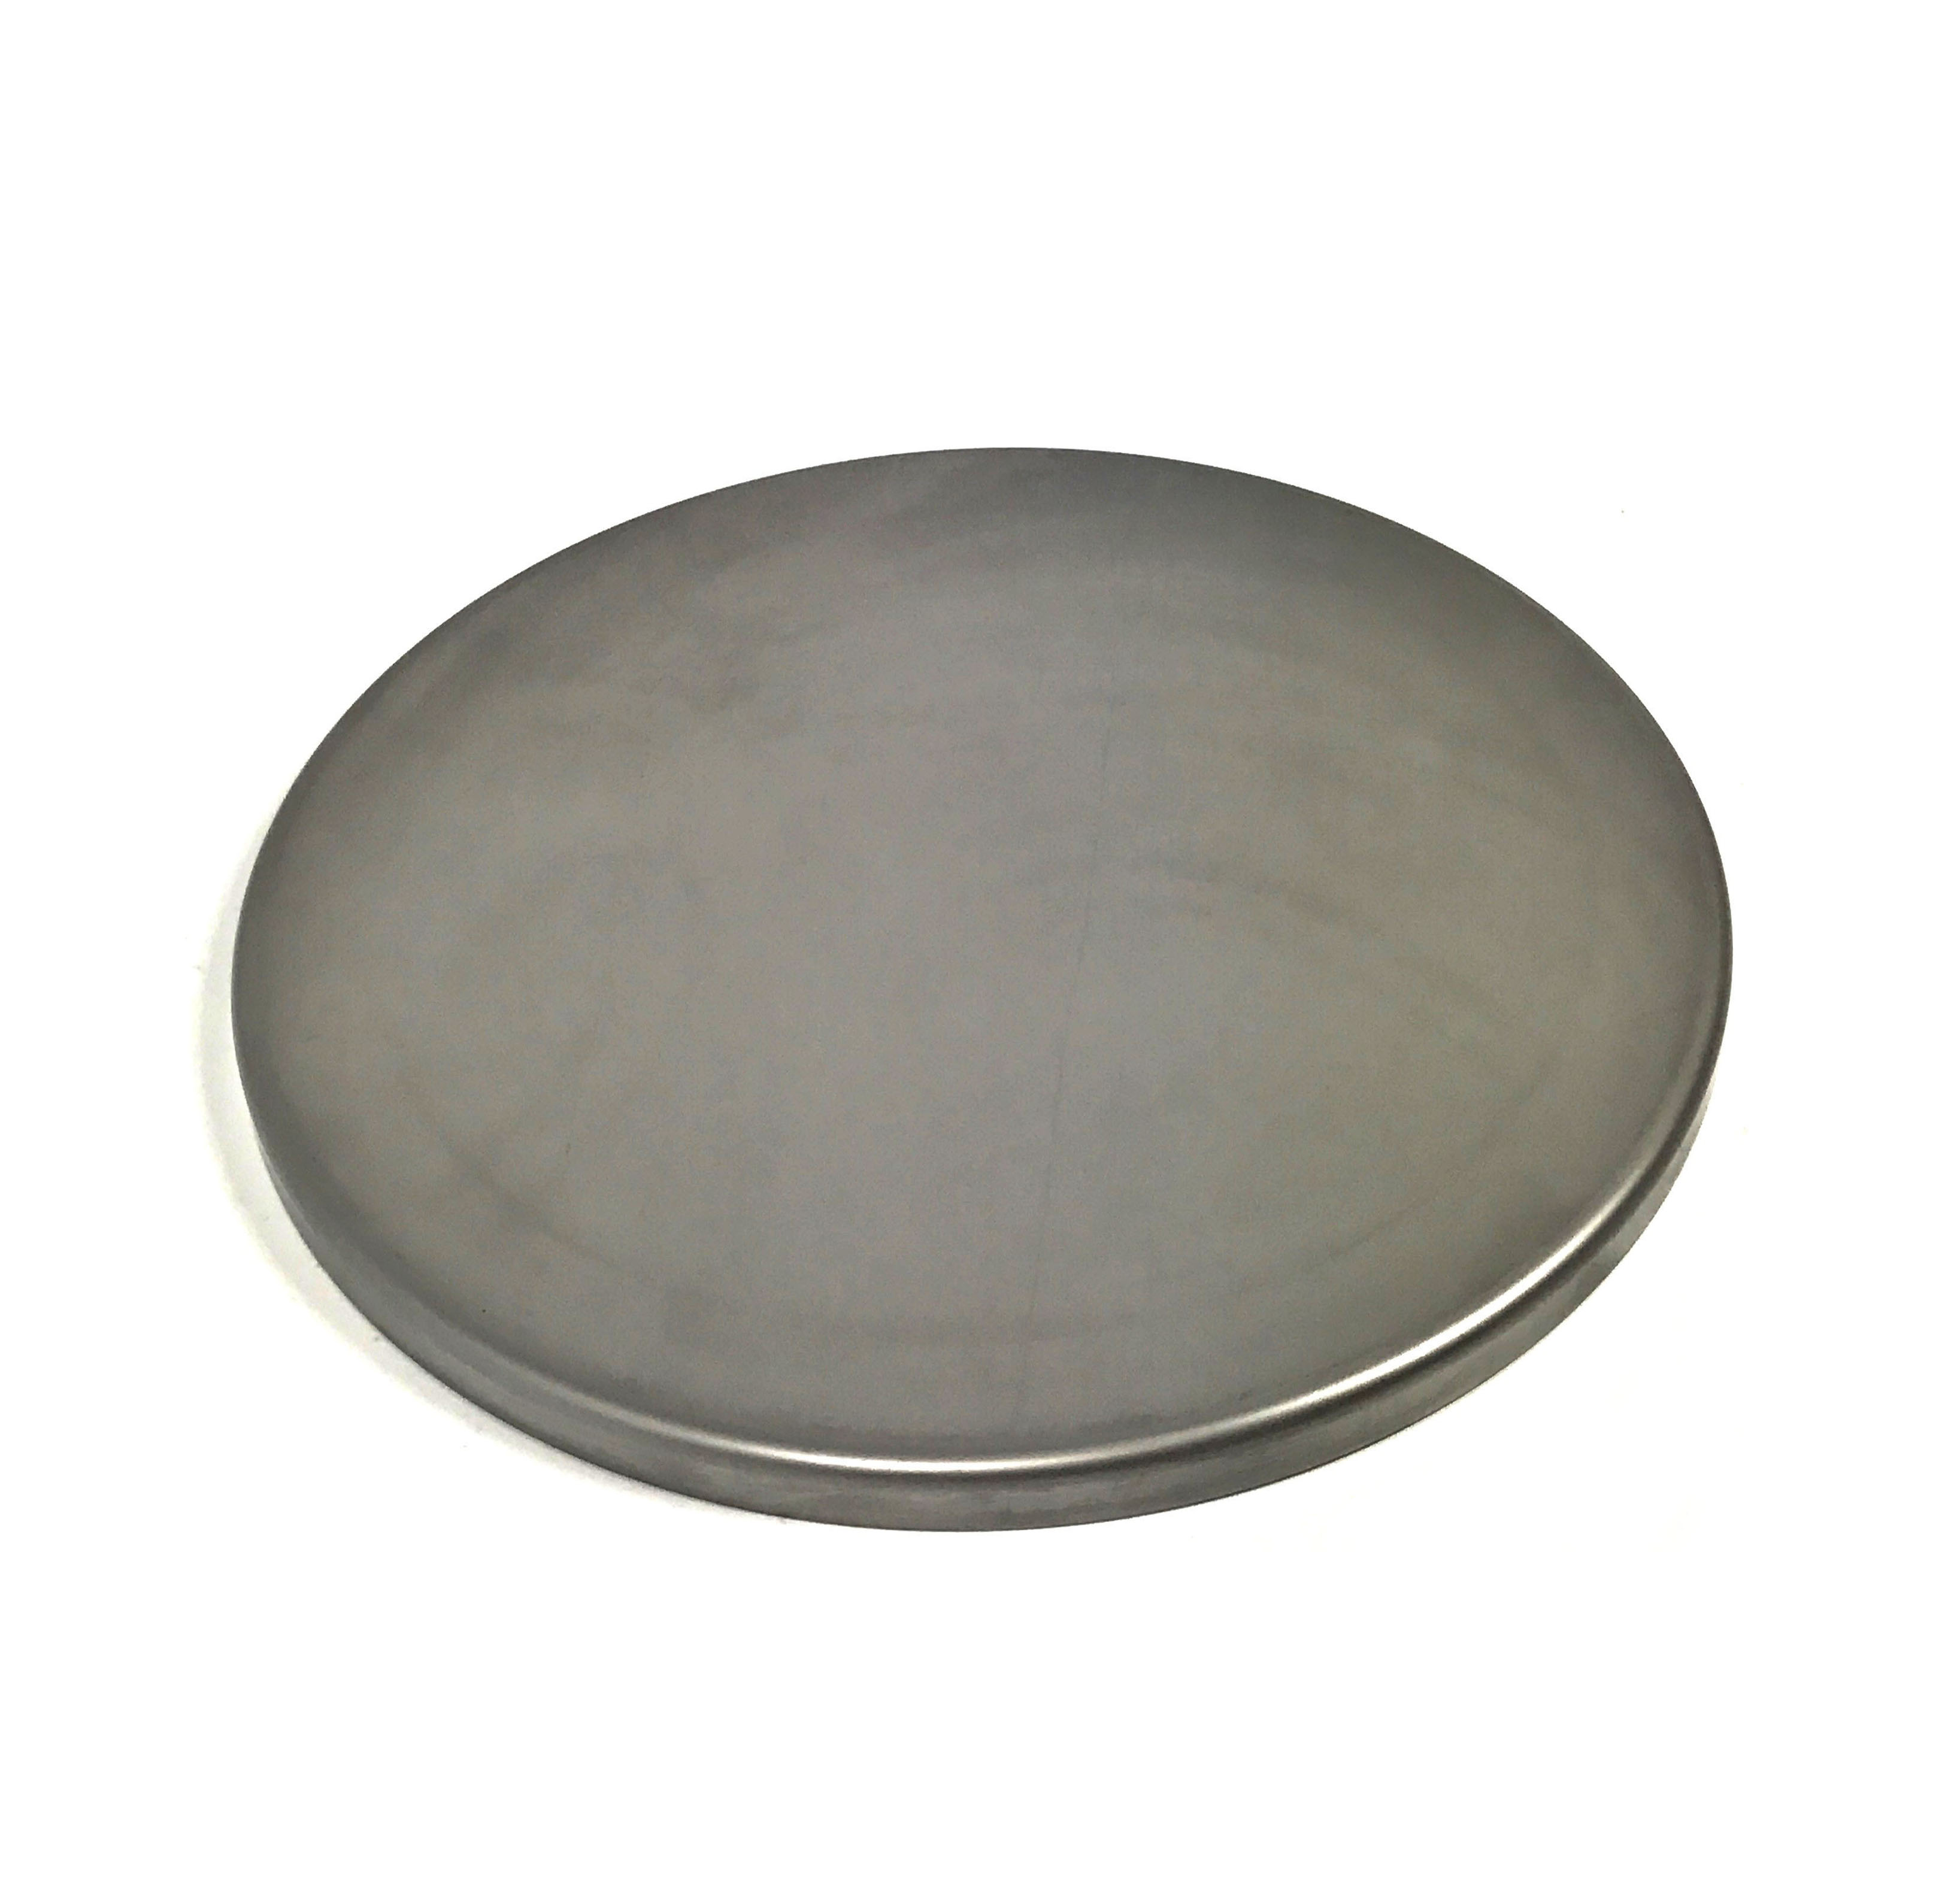 Stainless Steel Lid Spun from 304 Stainless Steel